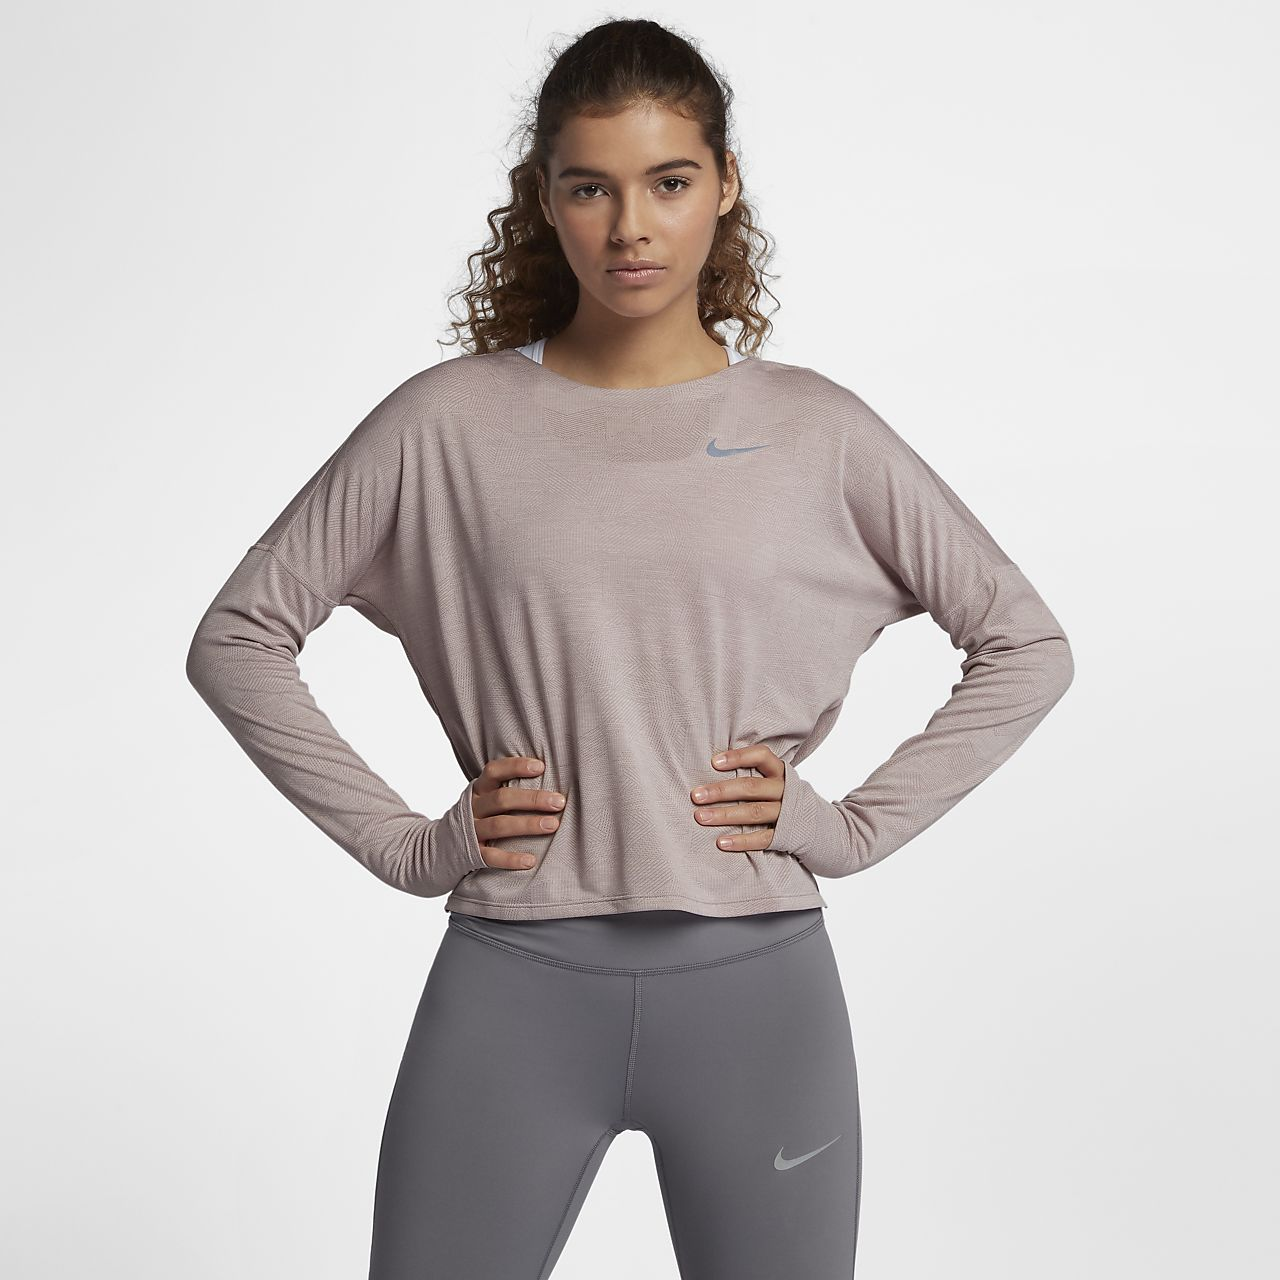 ... Nike Dri-FIT Medalist Women's Long-Sleeve Running Top